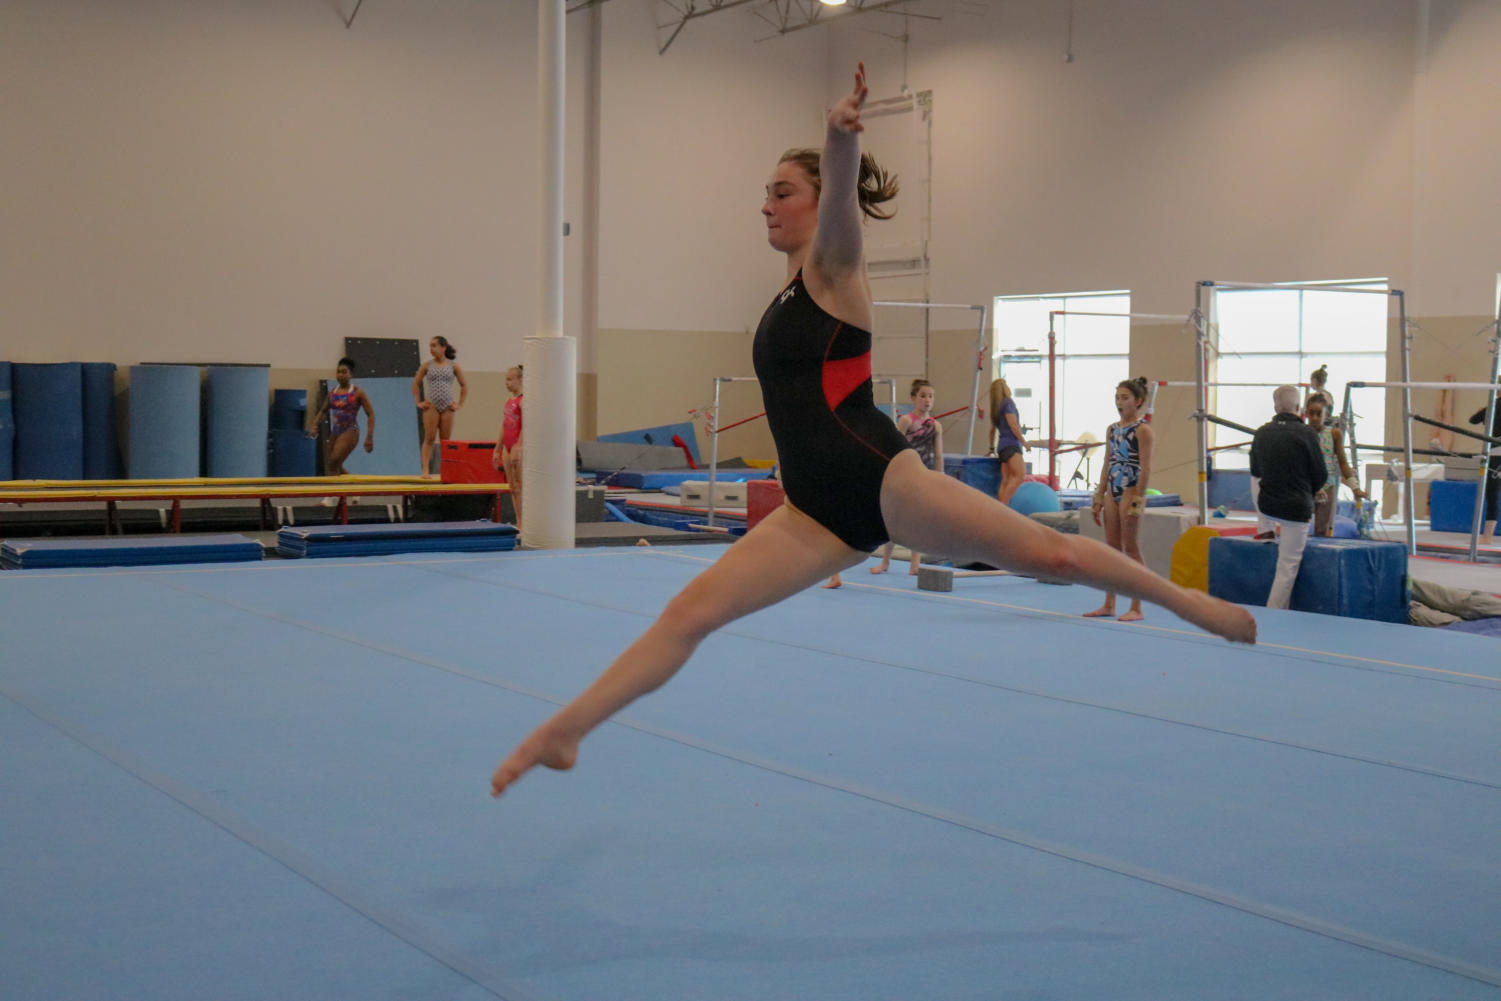 Coppell High School sophomore Tallulah Rushton practices her routine at Texas Dreams Gymnastics on March 18. Tallulah heads to the gym from 7 a.m. to 11 a.m., and her training consists of conditioning, vault, beams and floor.